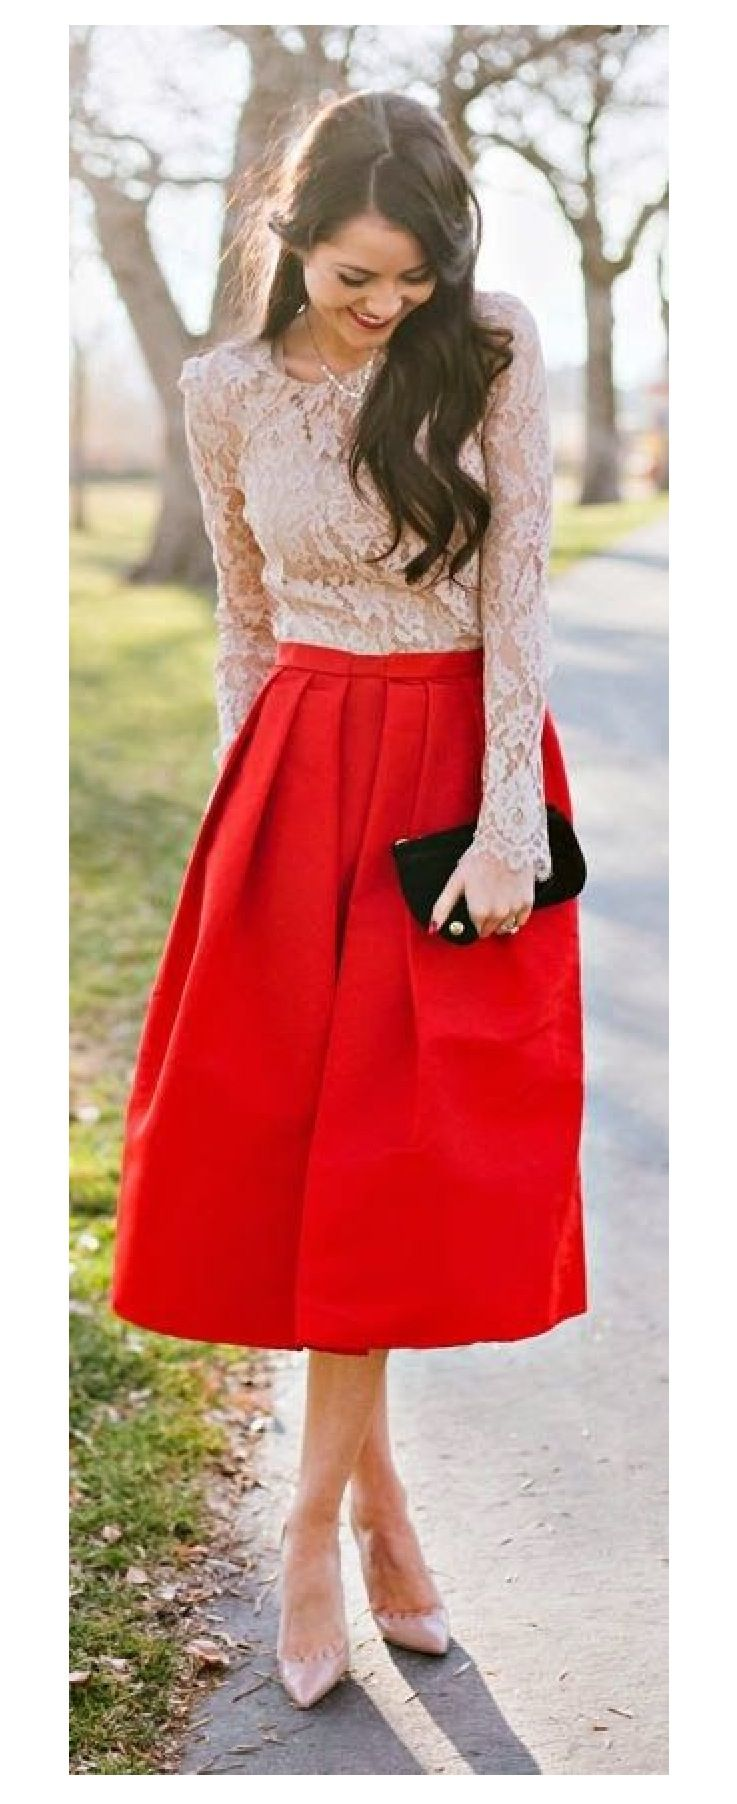 0aa539417f Love this | Women's fashion | Pinterest | Skirts, Dresses and Outfits